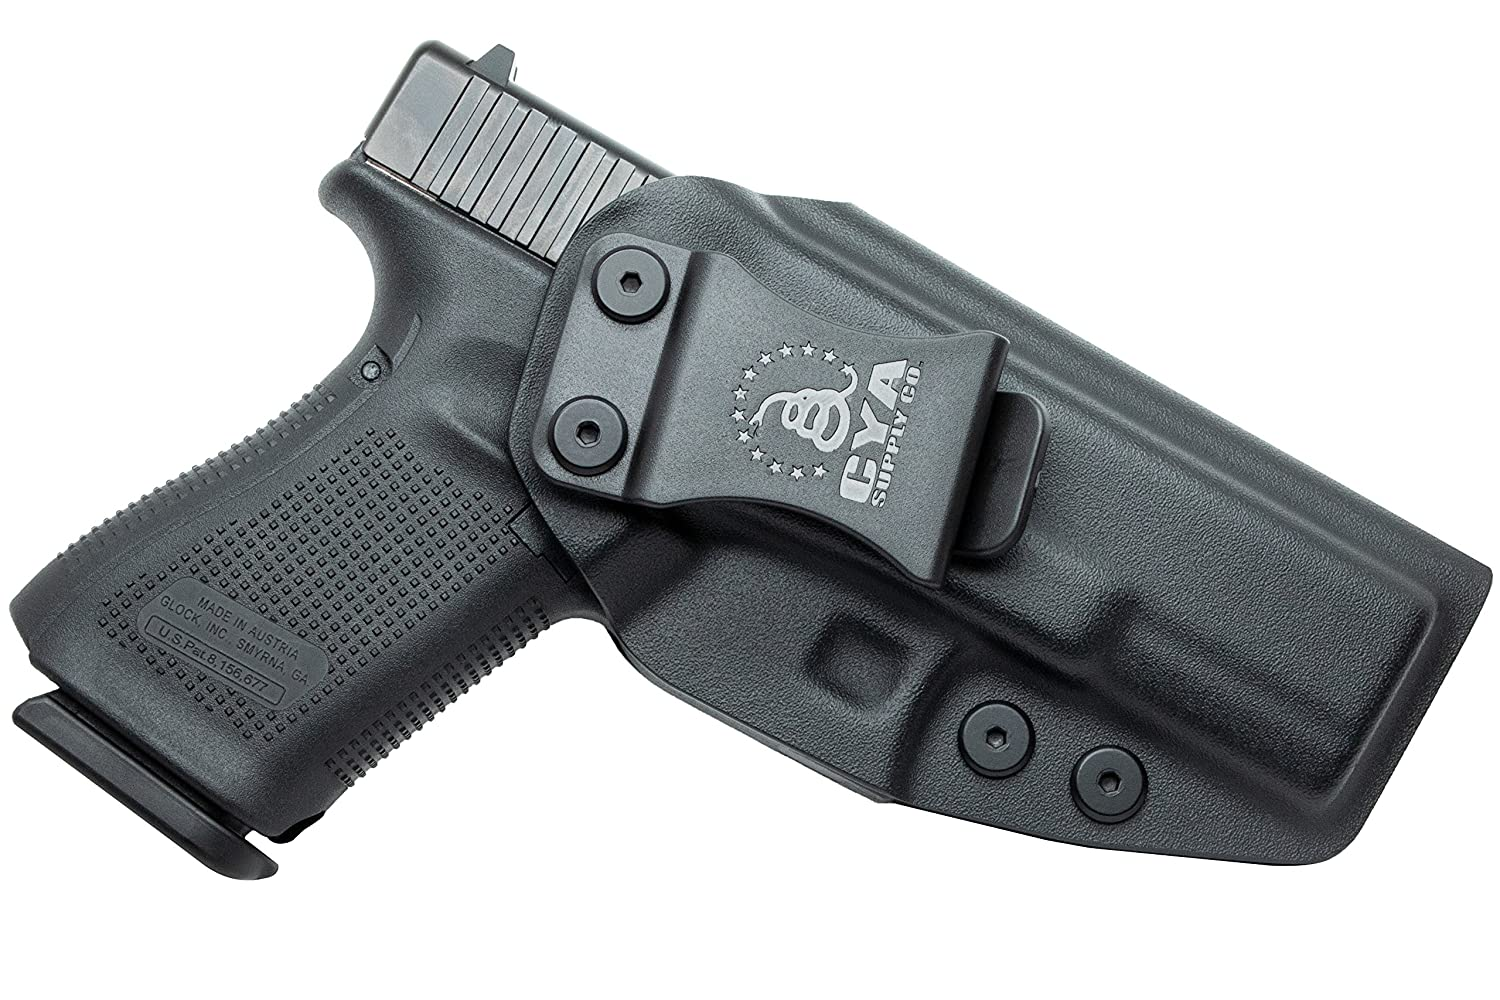 CYA Supply Co  IWB Holster Fits: Glock 19 / 19X / 23/32 / 45 - GEN 3-5 -  Veteran Owned Company - Made in USA - Inside Waistband Concealed Carry